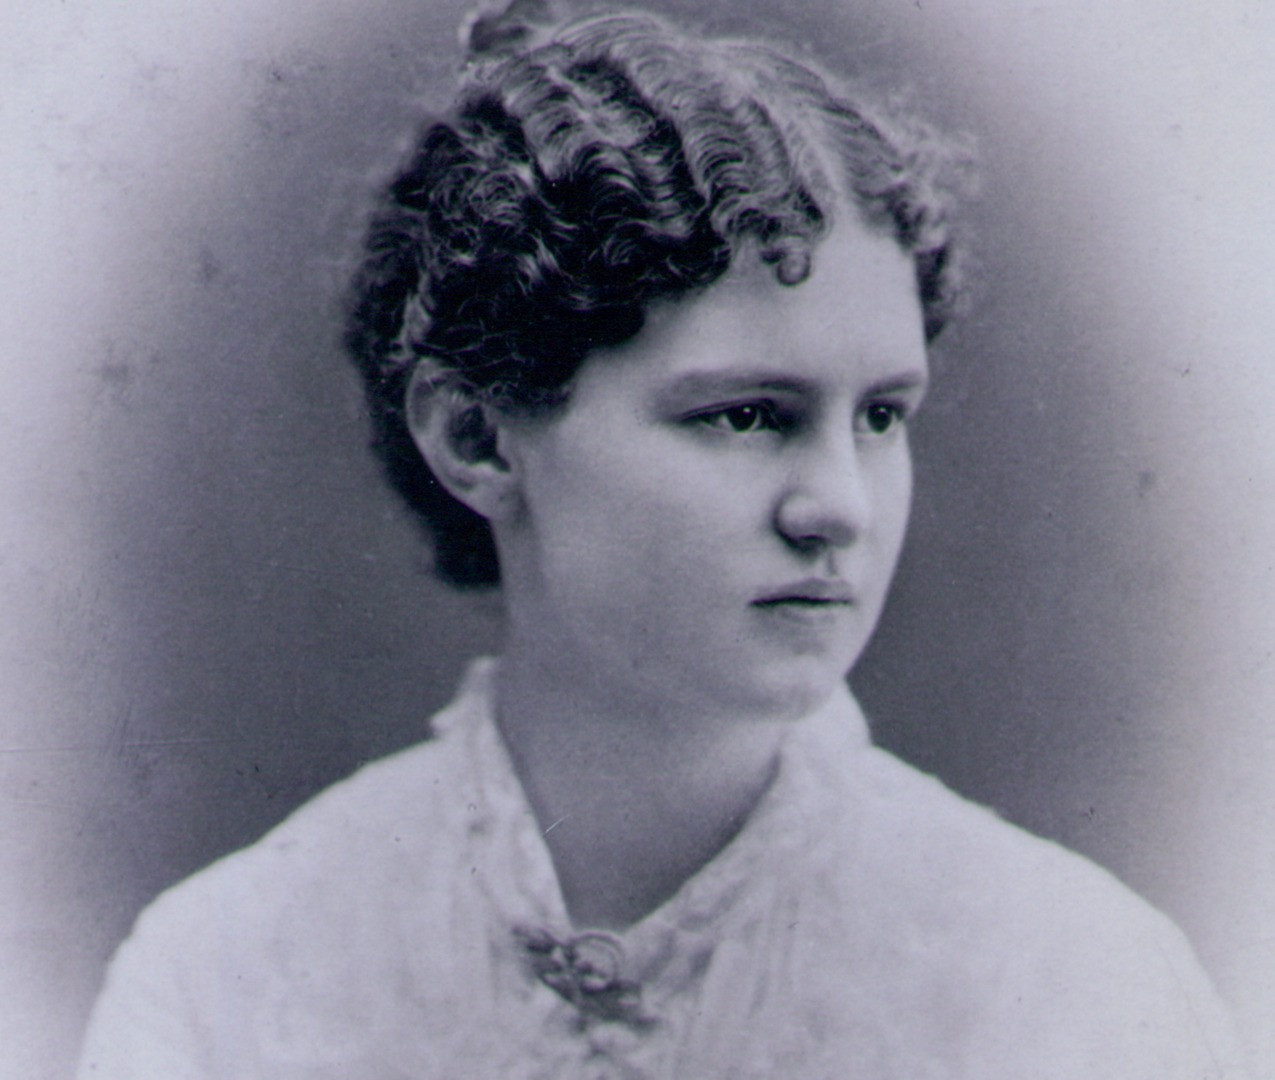 Mary Lathrop